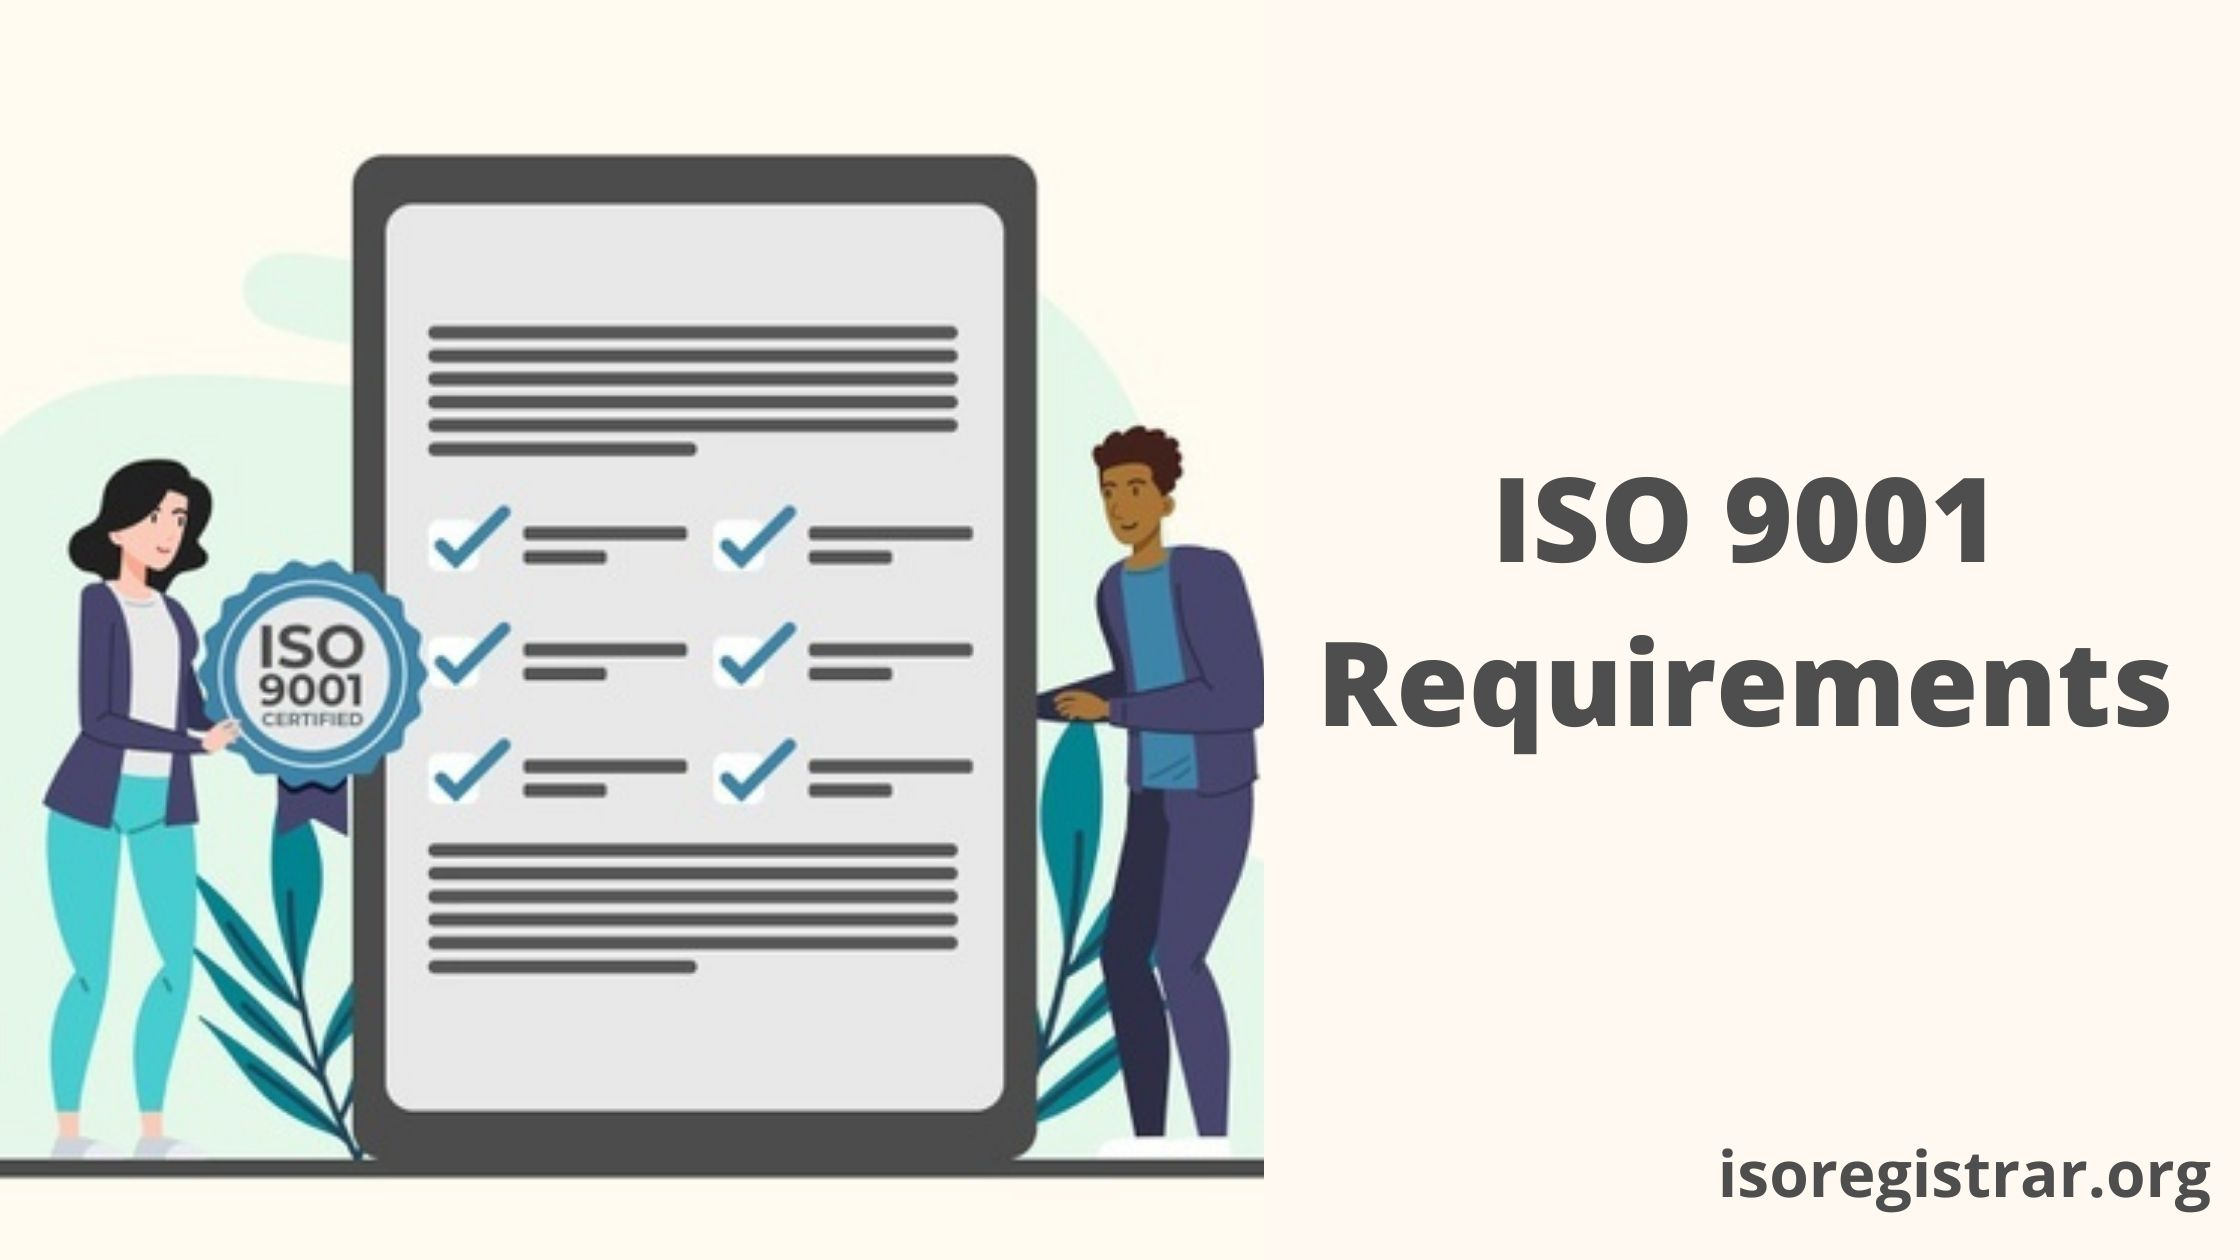 ISO 9001 Requirements - Quality Management System